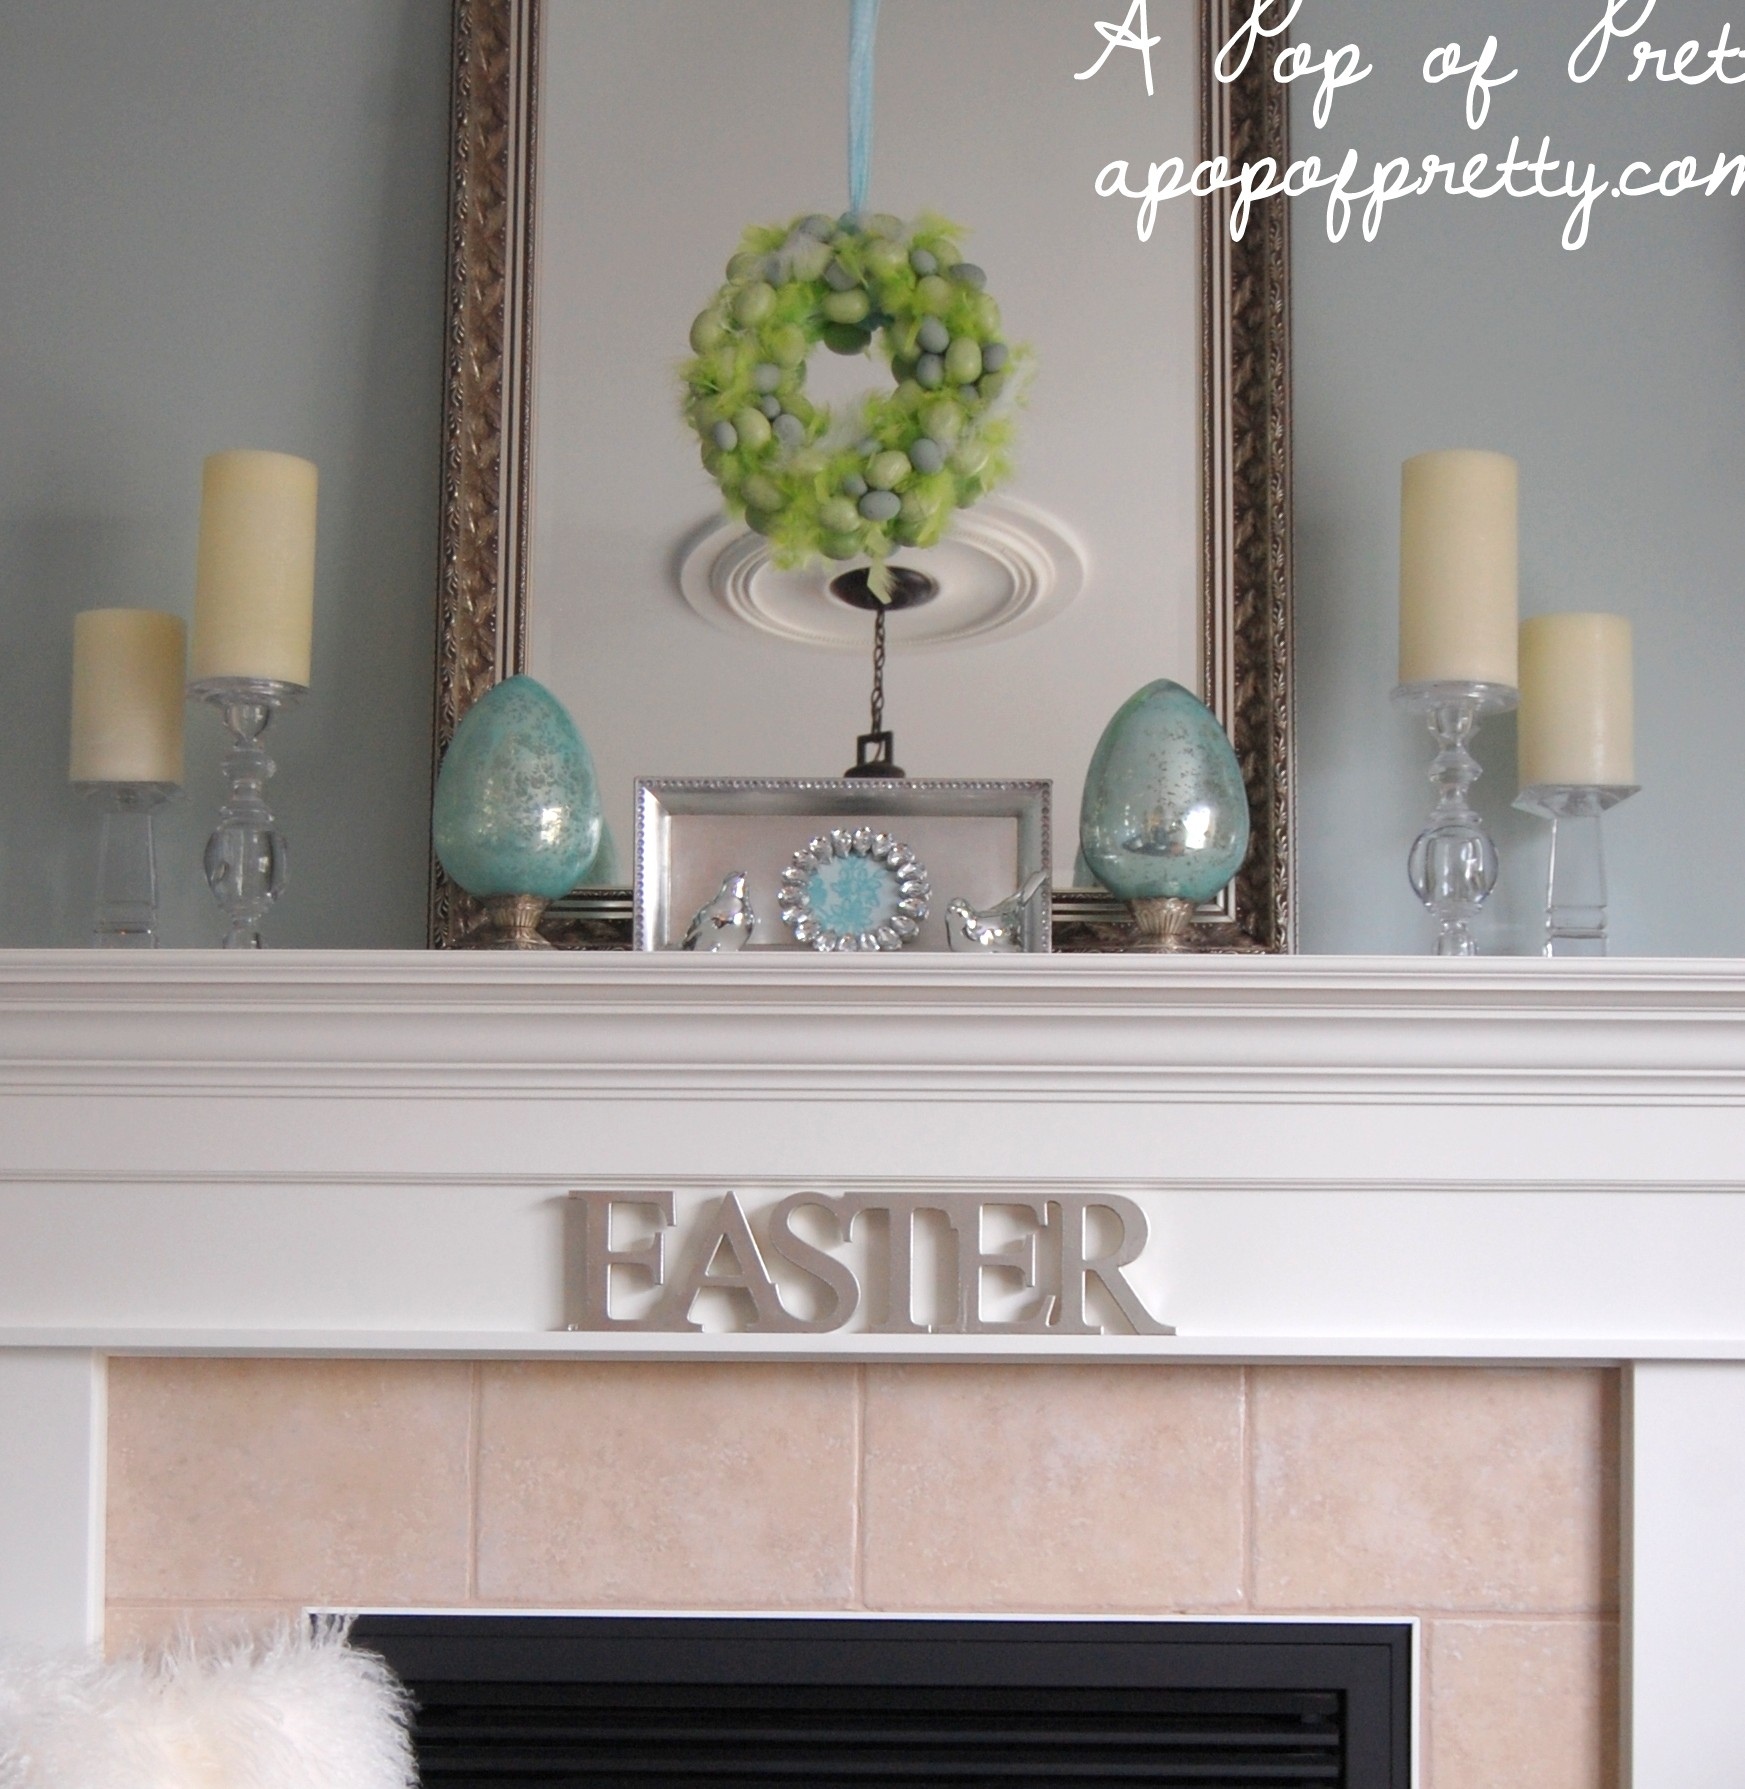 Home Design Ideas Blog: Easter Decorating Ideas: Decorate A Simple Easter Mantel